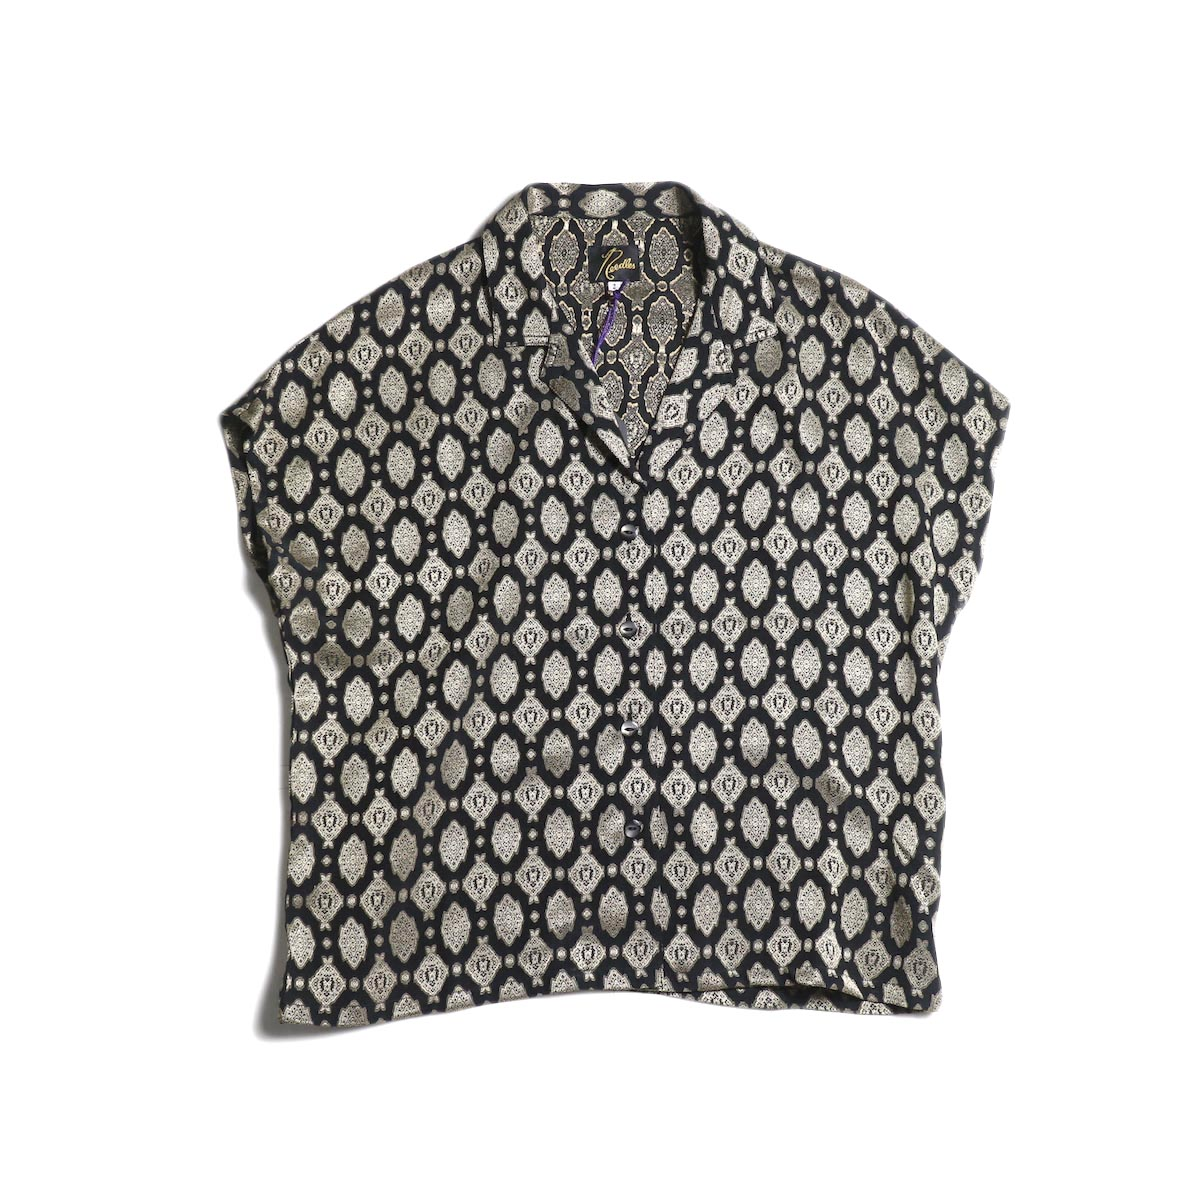 Needles / French Sleeve Blouse -Cu/Ac Jacquard / Fine Pattern (Navy)